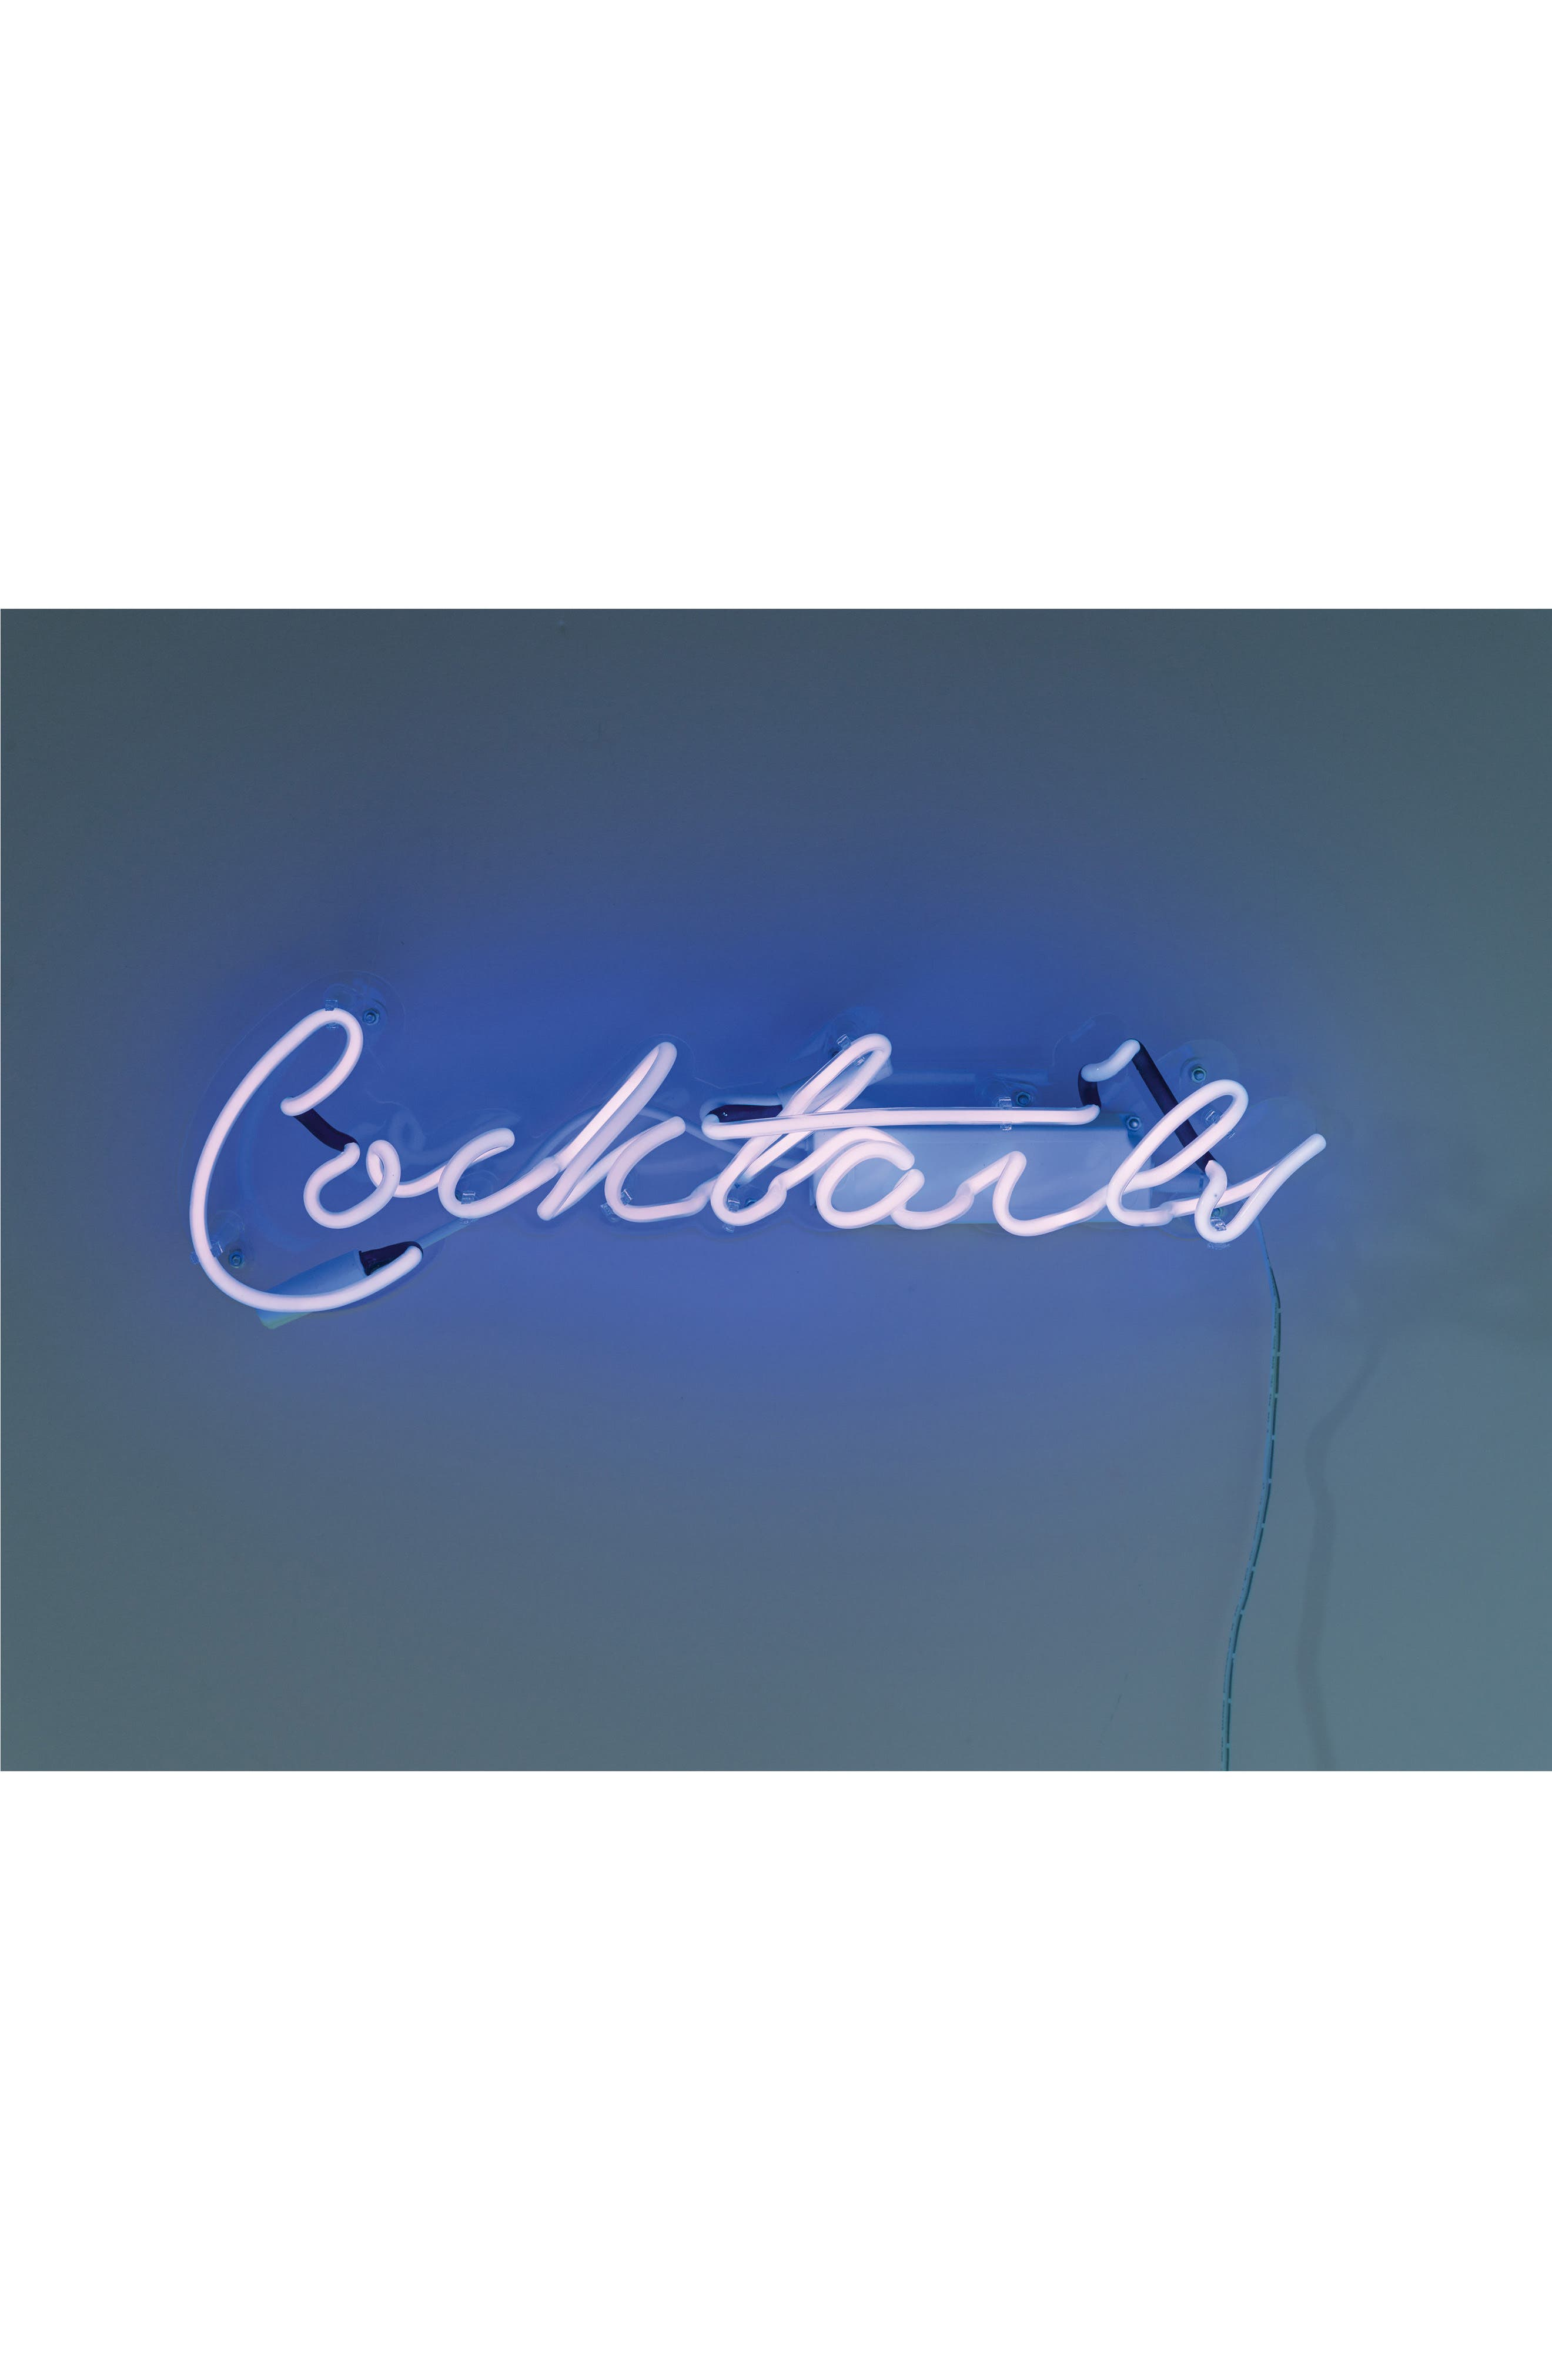 Cocktails Neon Light Wall Art,                         Main,                         color, 400